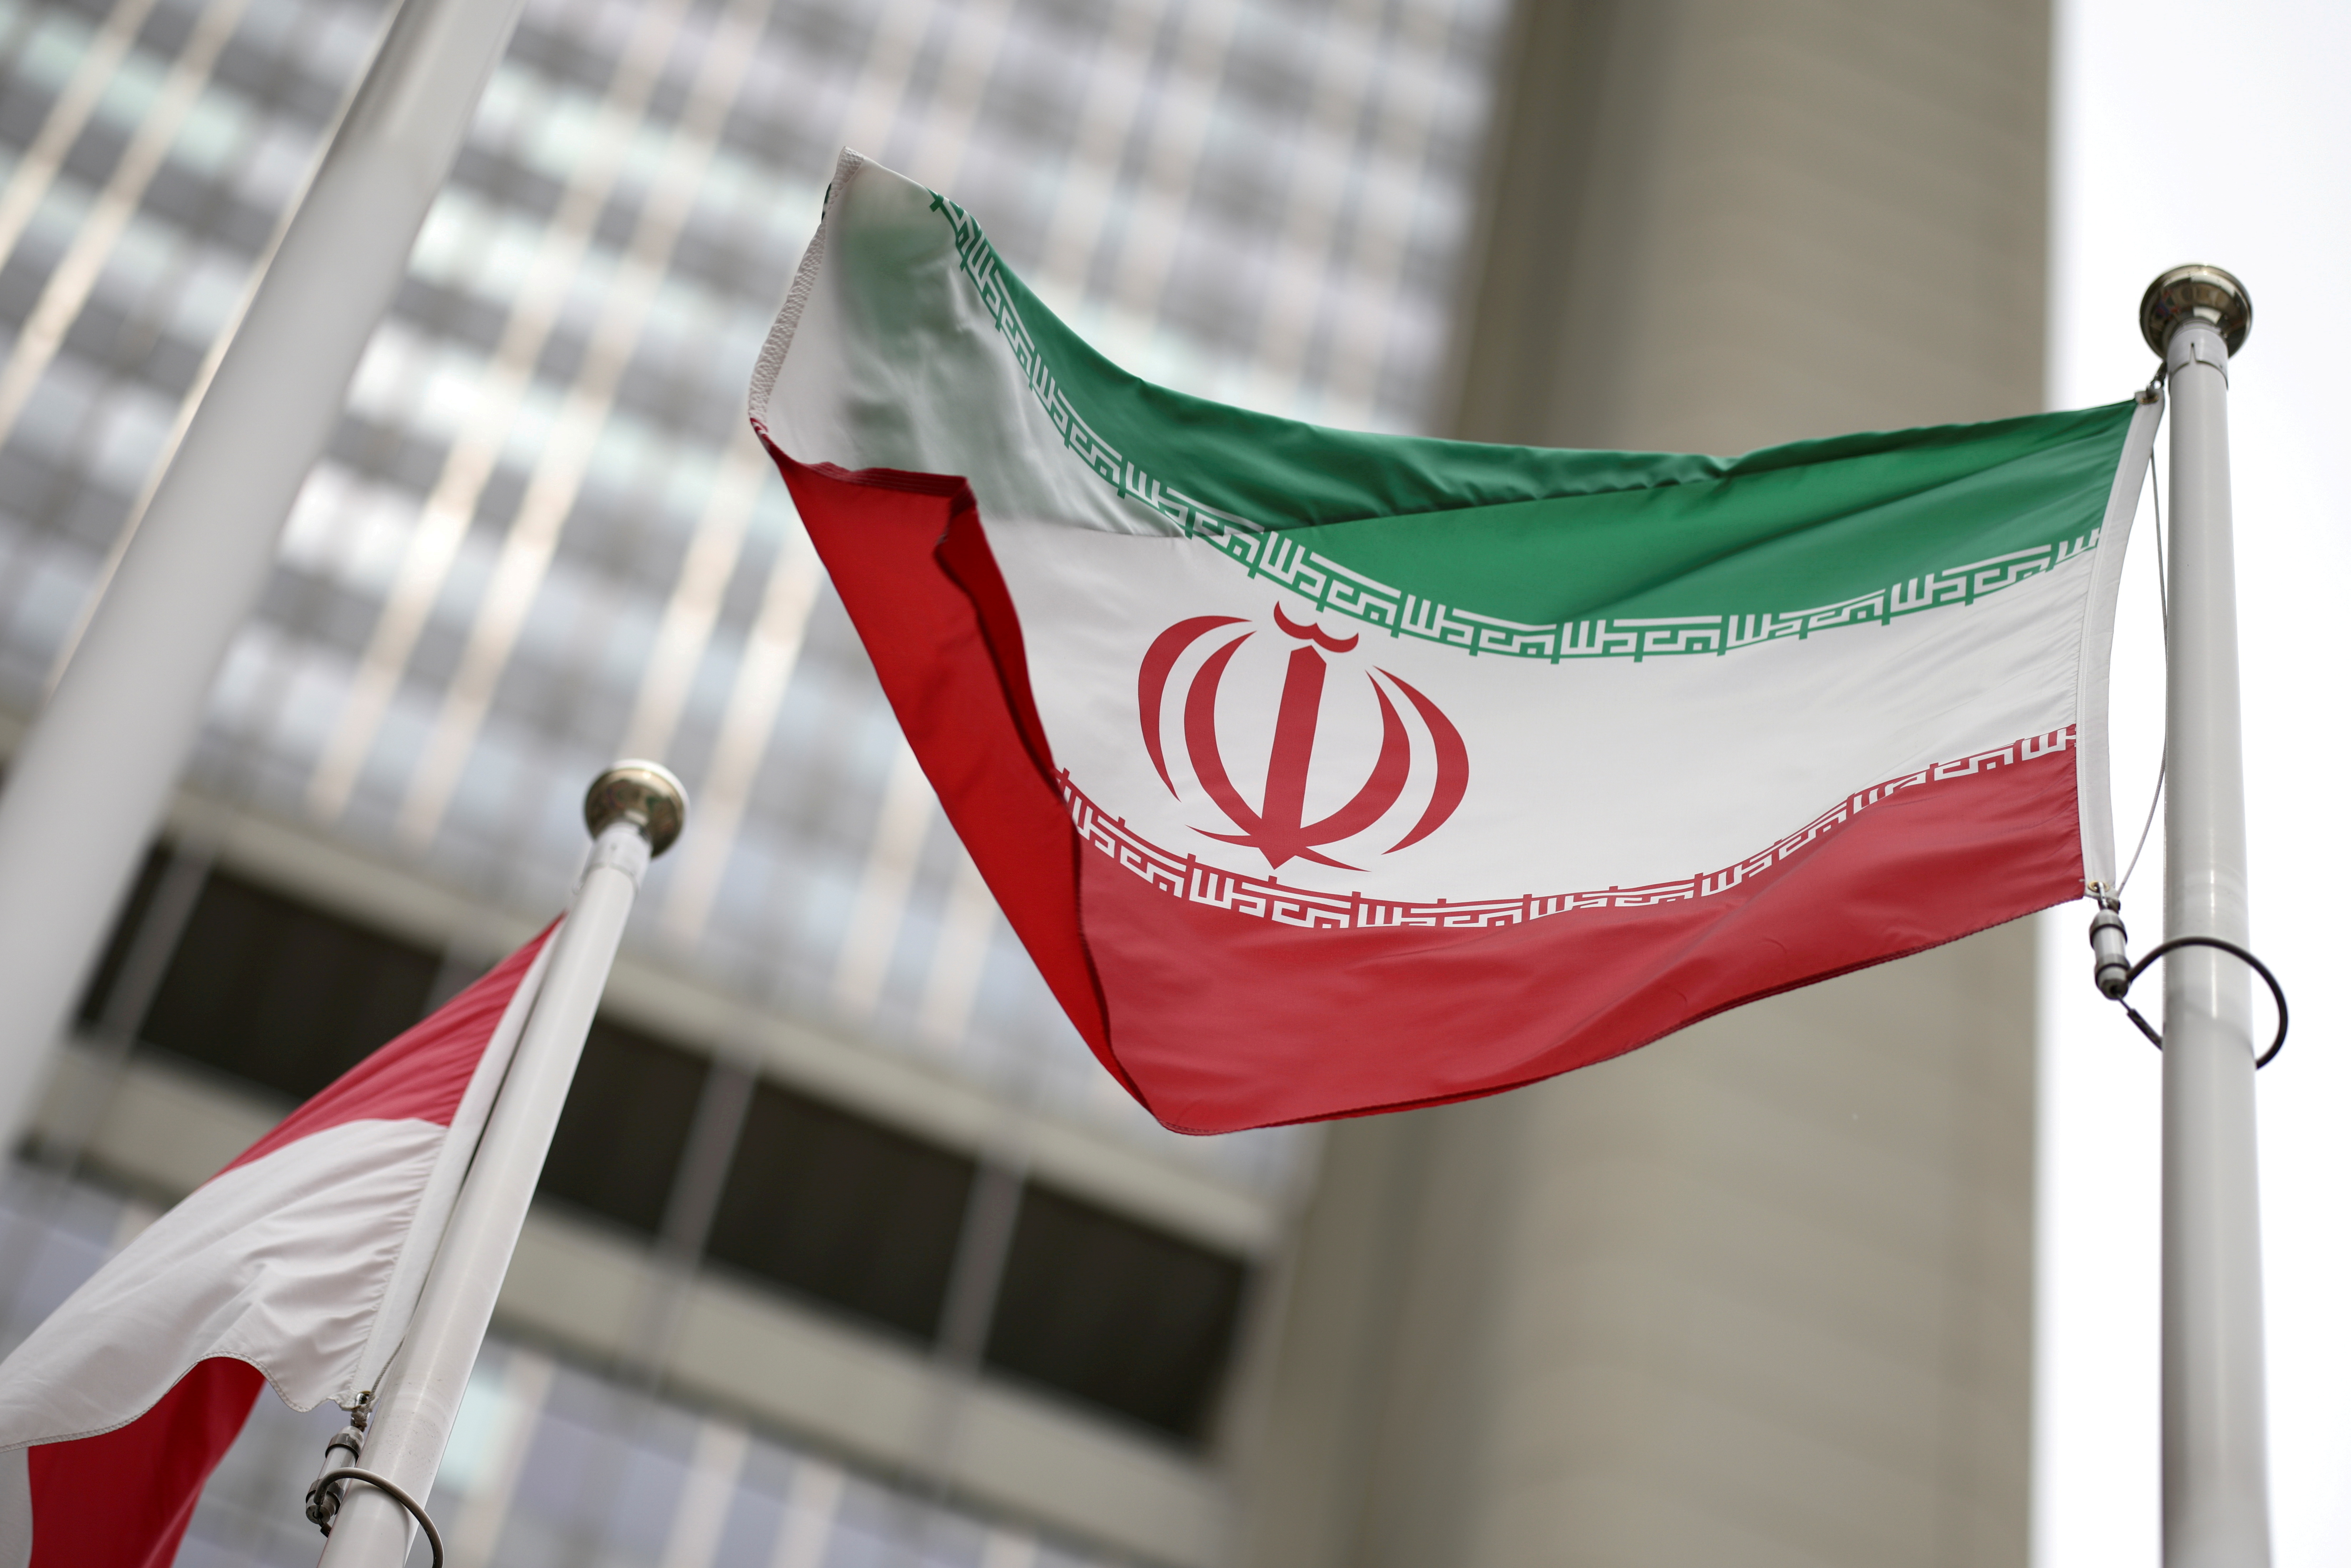 Iranian flag flies in front of the UN office building, housing IAEA headquarters, amid the coronavirus disease (COVID-19) pandemic, in Vienna, Austria, May 24, 2021. REUTERS/Lisi Niesner/